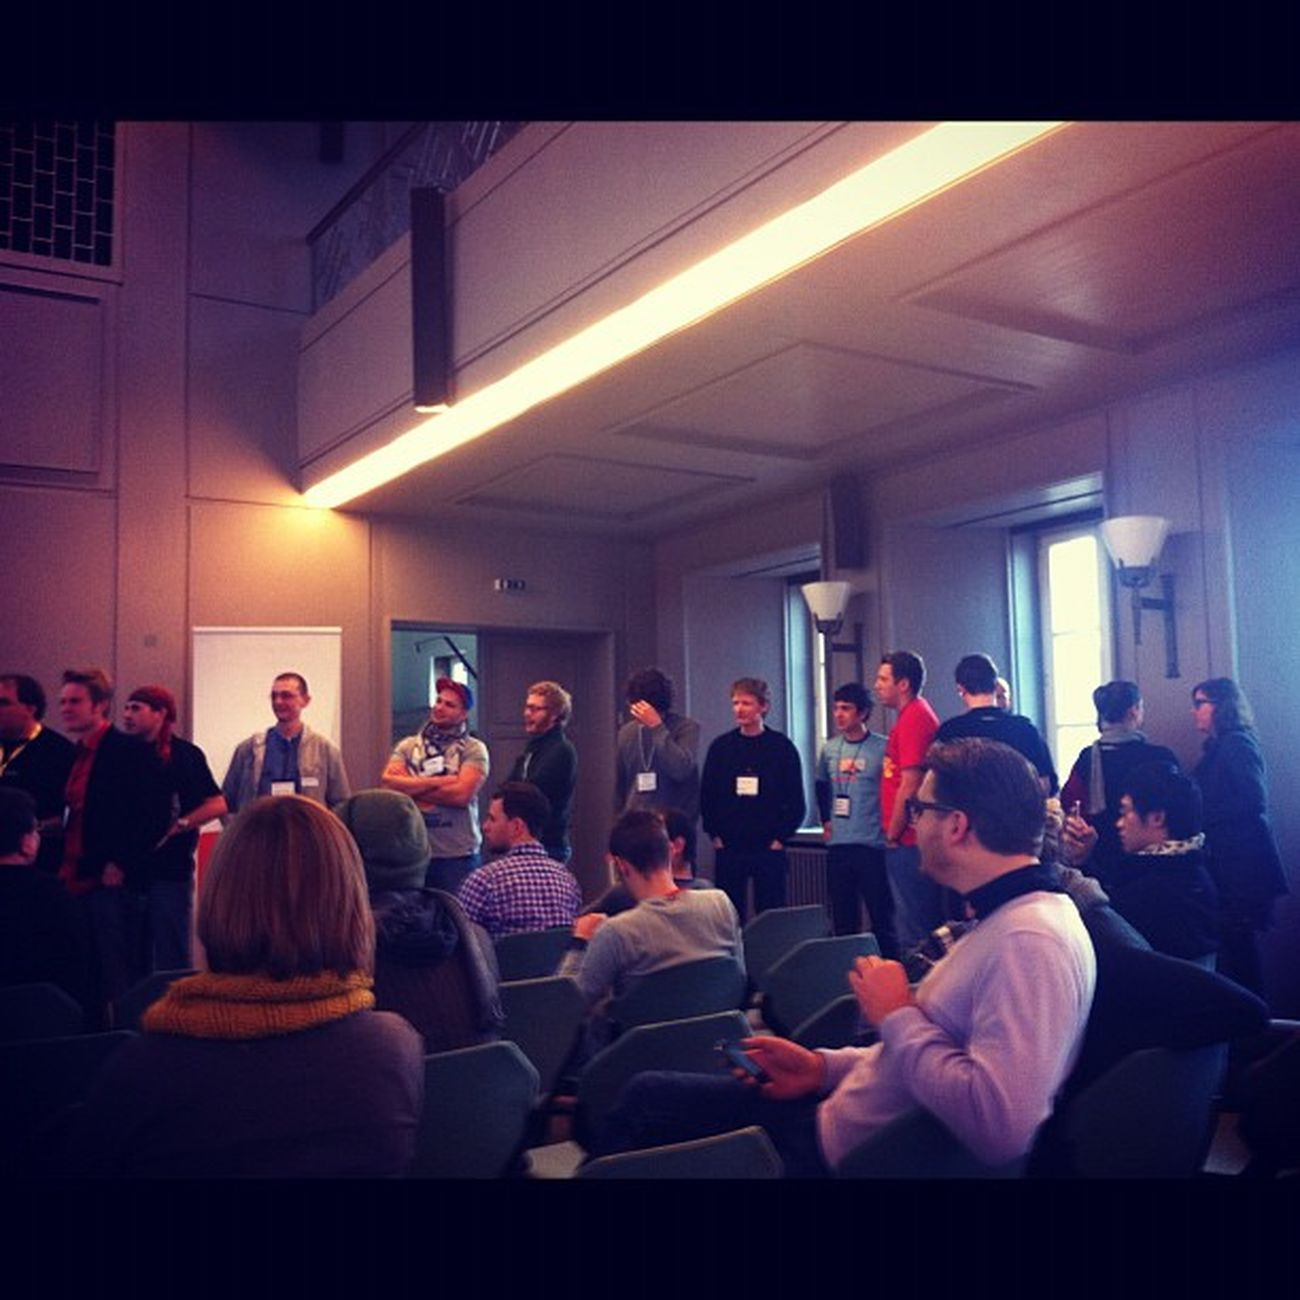 Sessionplanung Part II #barbs2011 Barbs2011